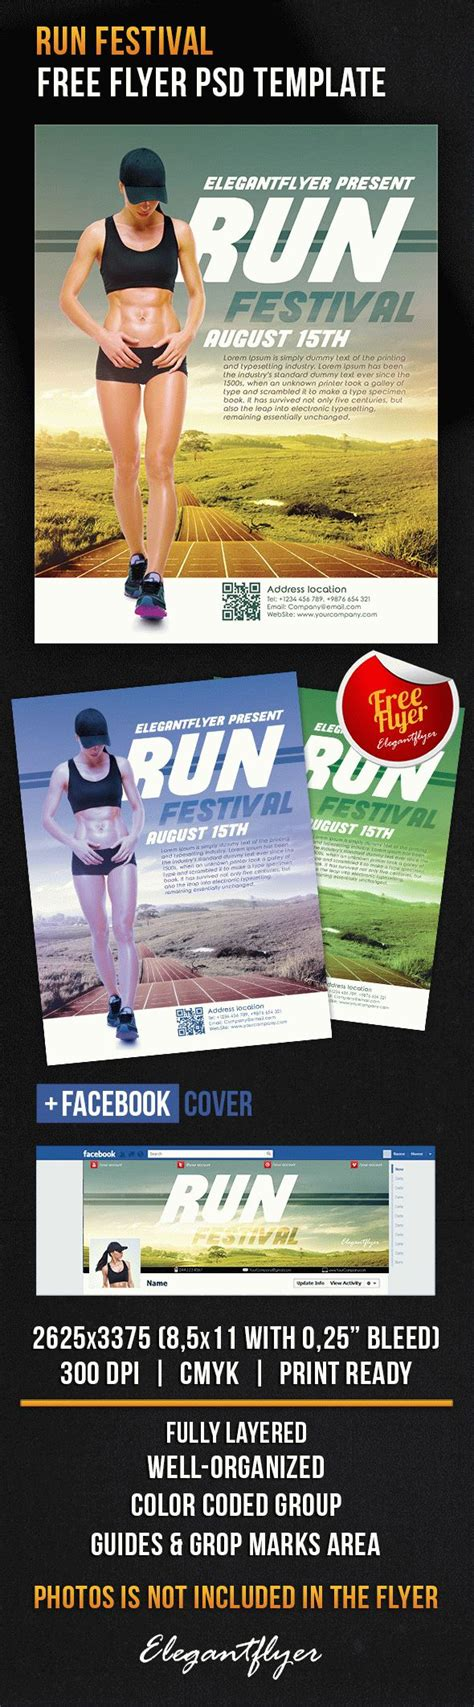 Free Run Festival Facebook Cover Photoshop Flyer Template Flyershitter Com Run Flyer Template Free